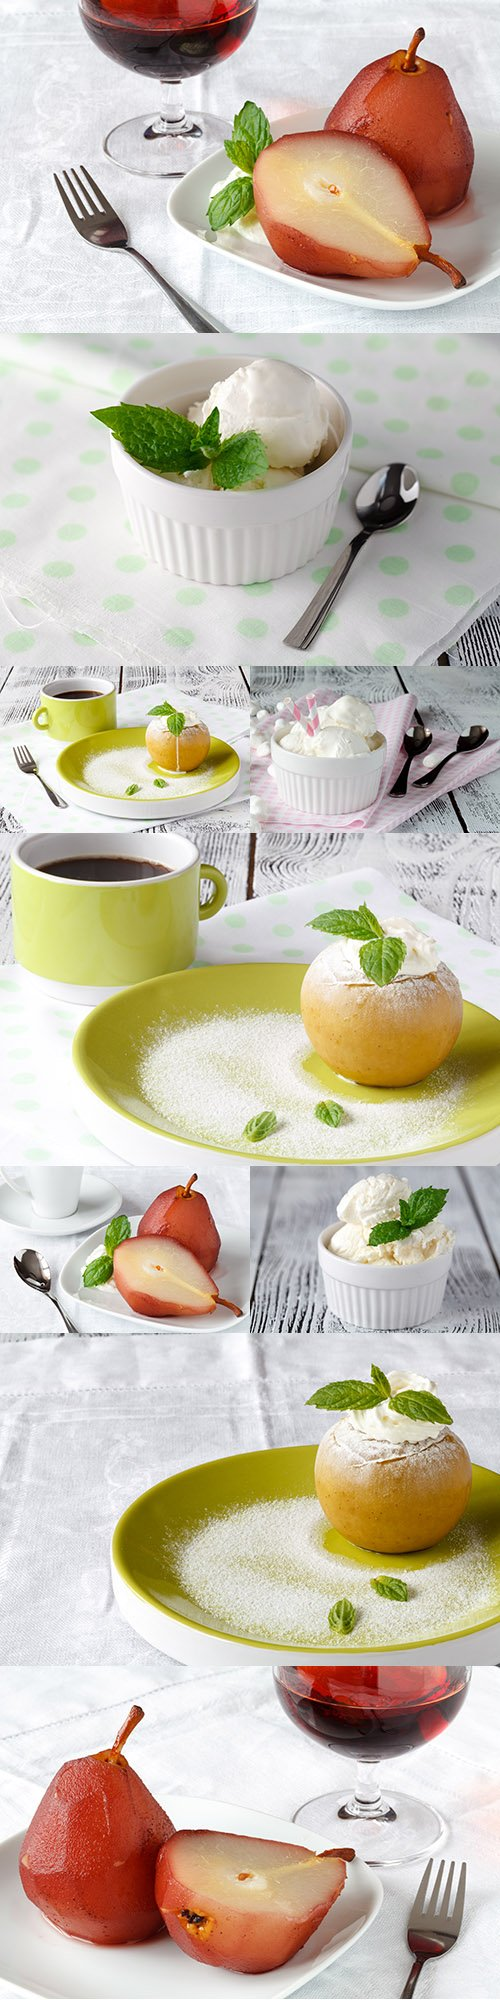 Fruit dessert with ice cream and mint leaves